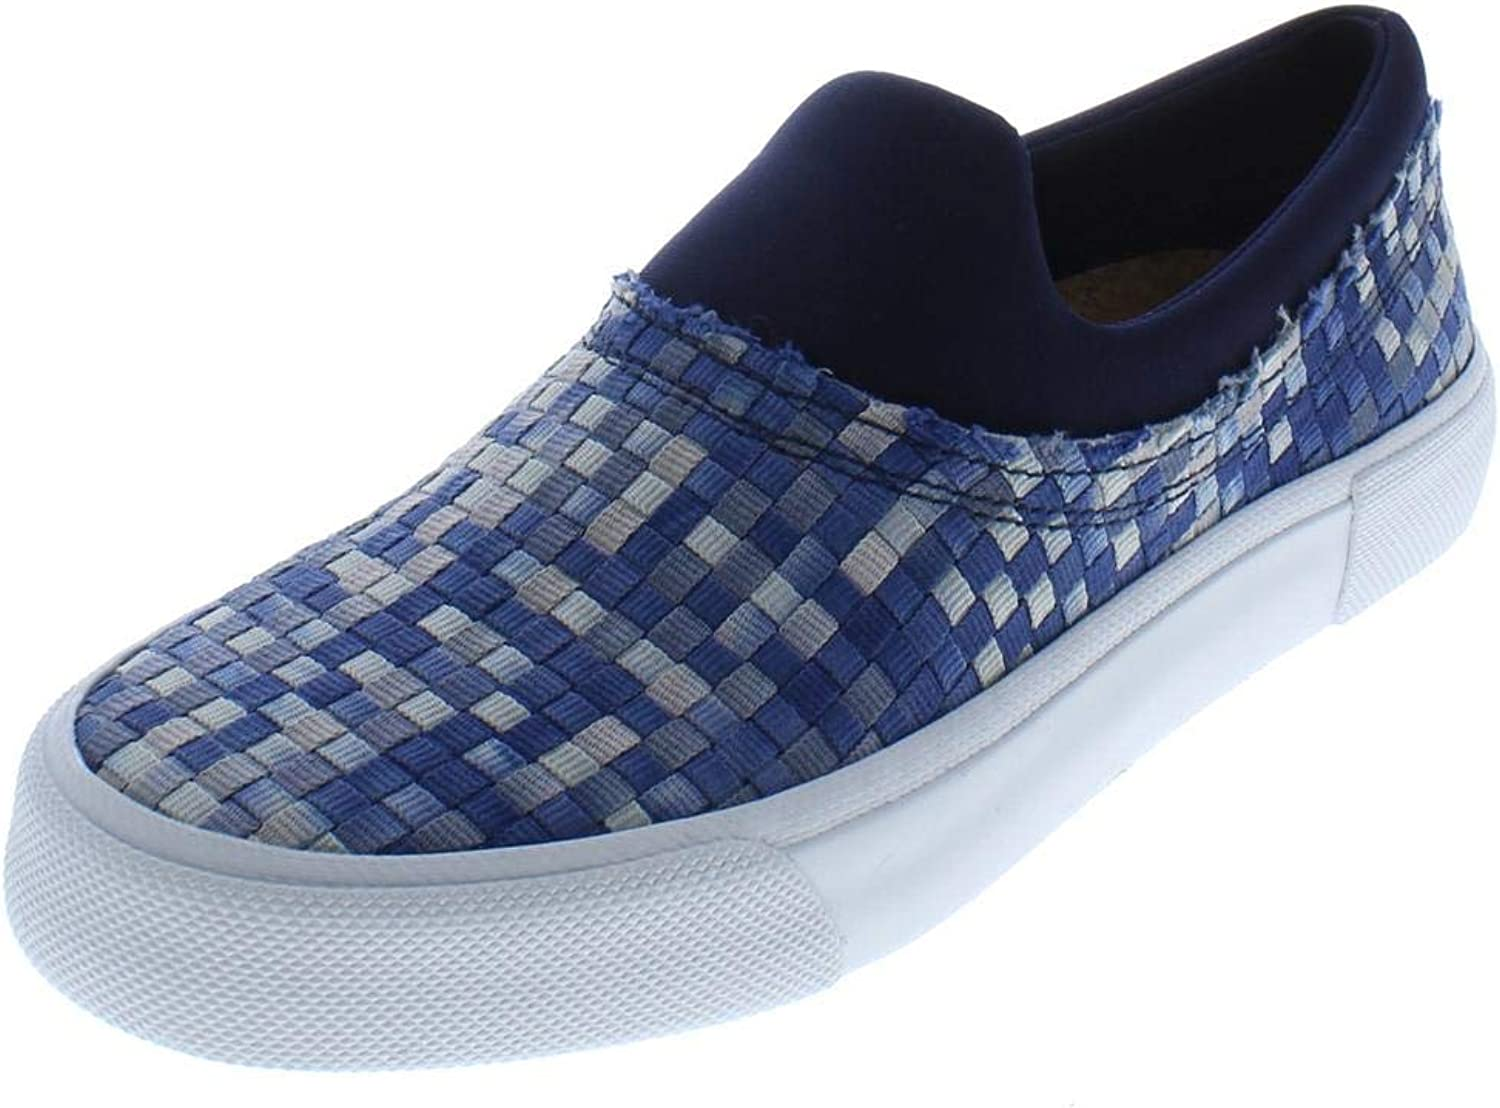 Jessica Simpson Womens Dalana Basketweave Padded Insole Fashion Sneakers